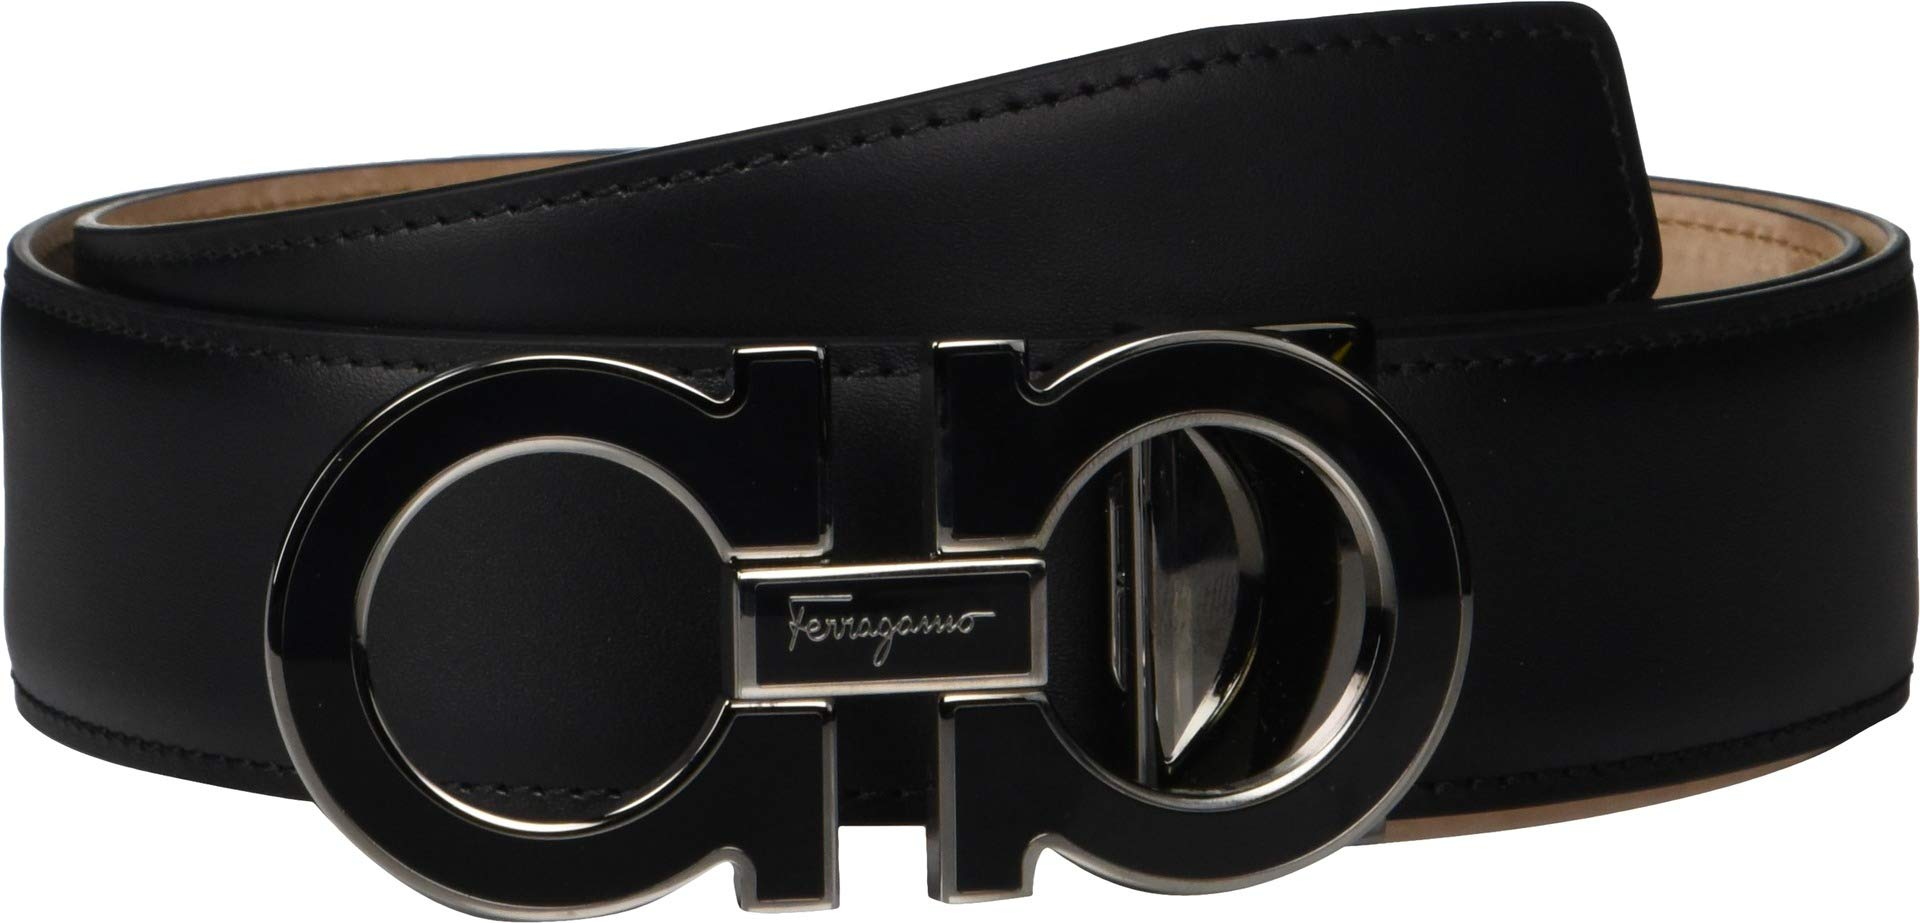 Salvatore Ferragamo Men's Outline Dress Belt - 679750 Black 2 40